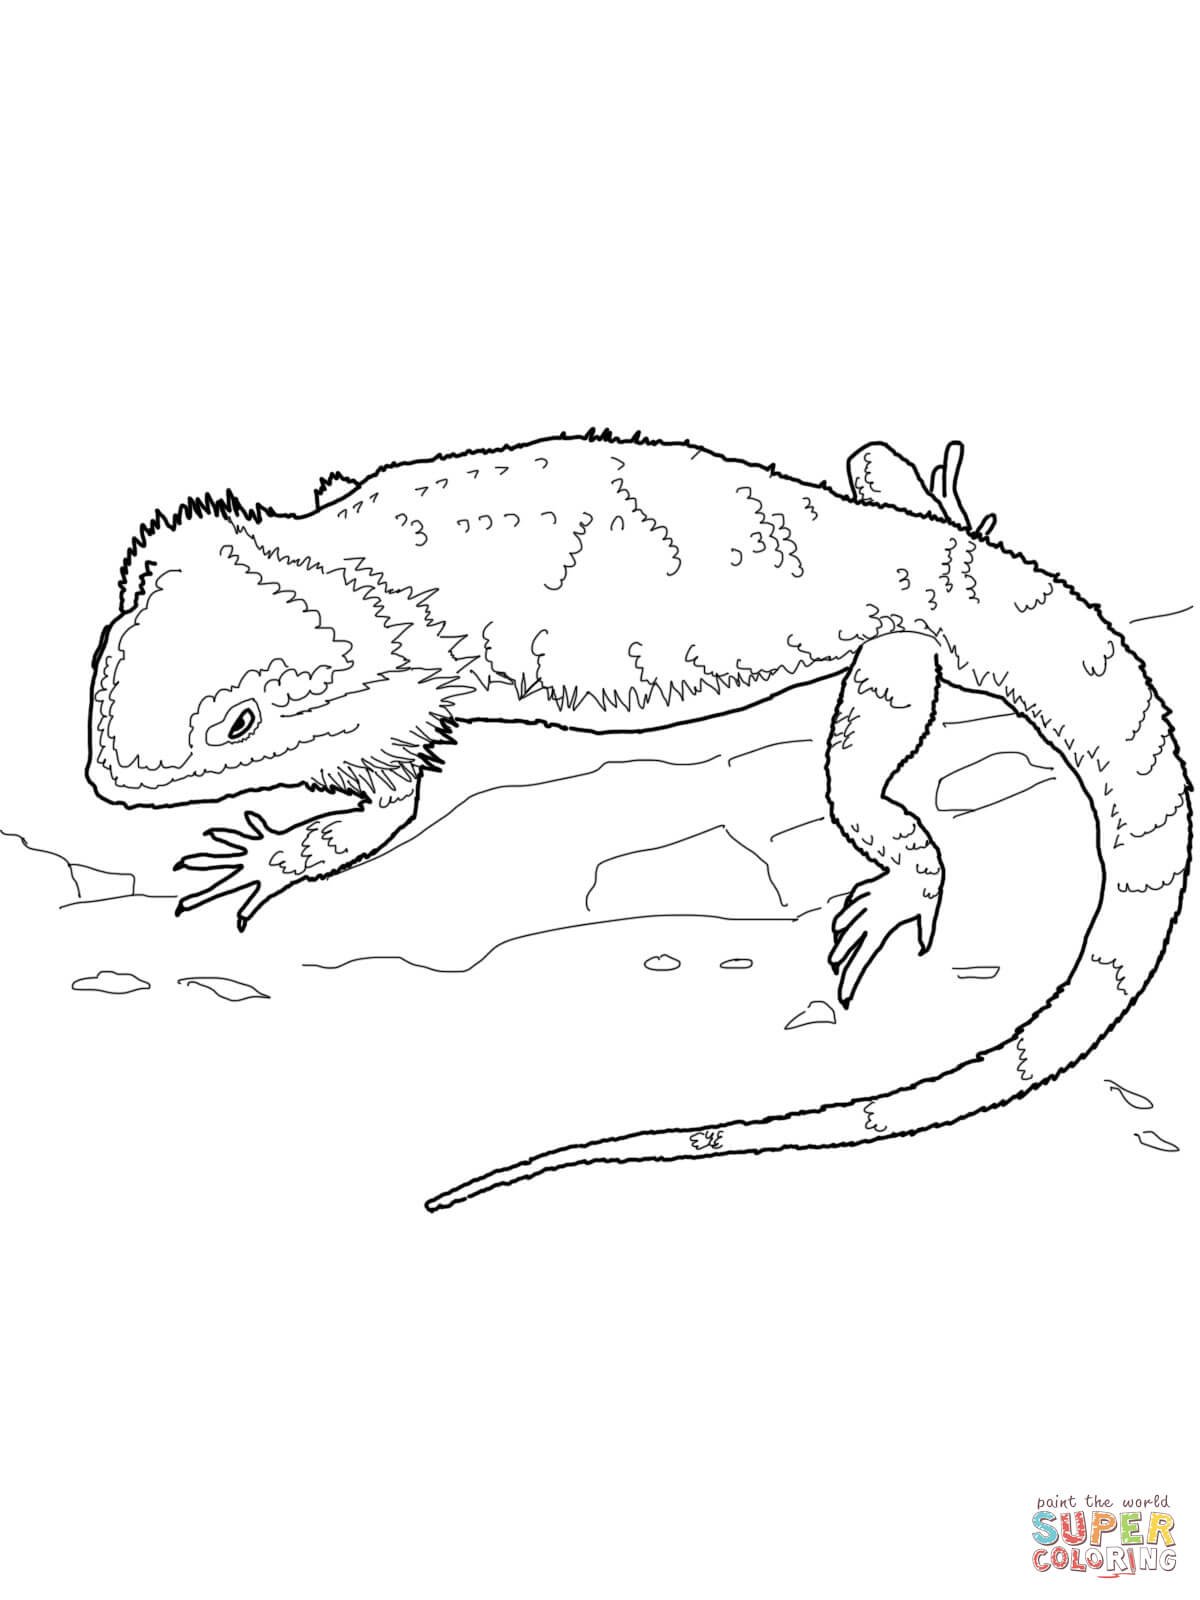 Australian Water Dragon coloring page.